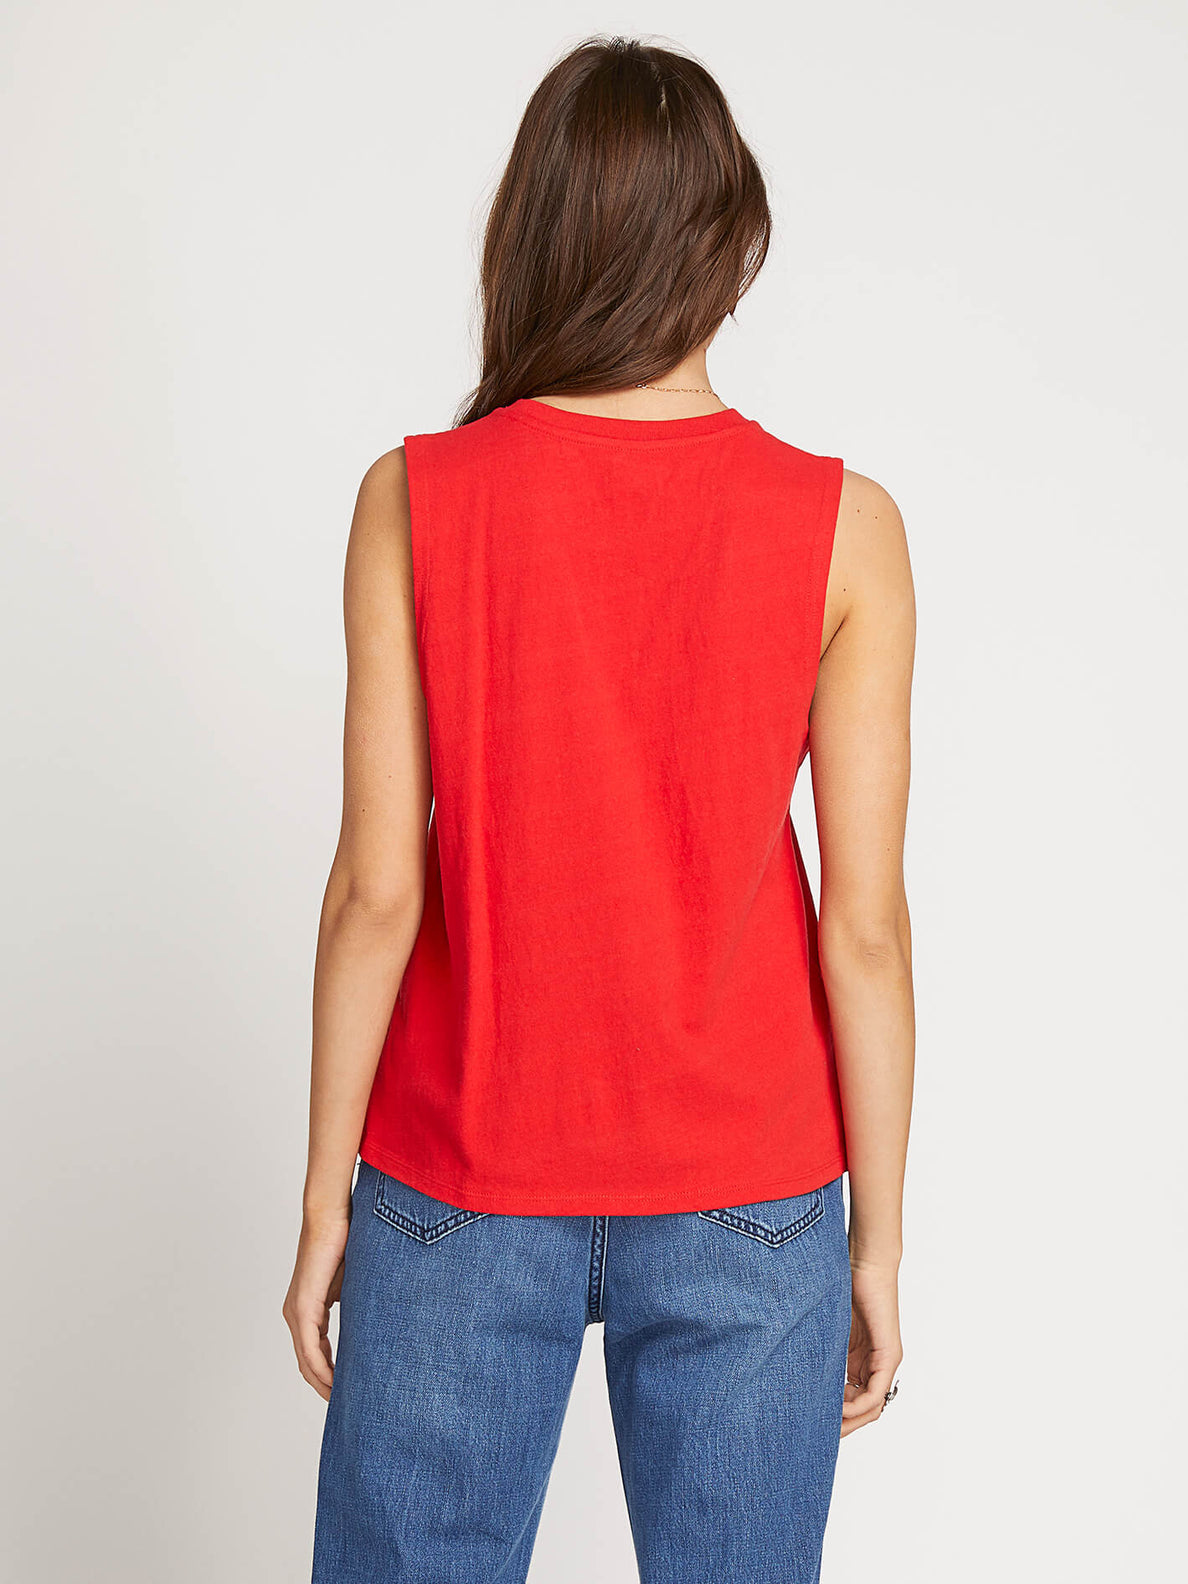 Volcom Love Tank In Red, Back View